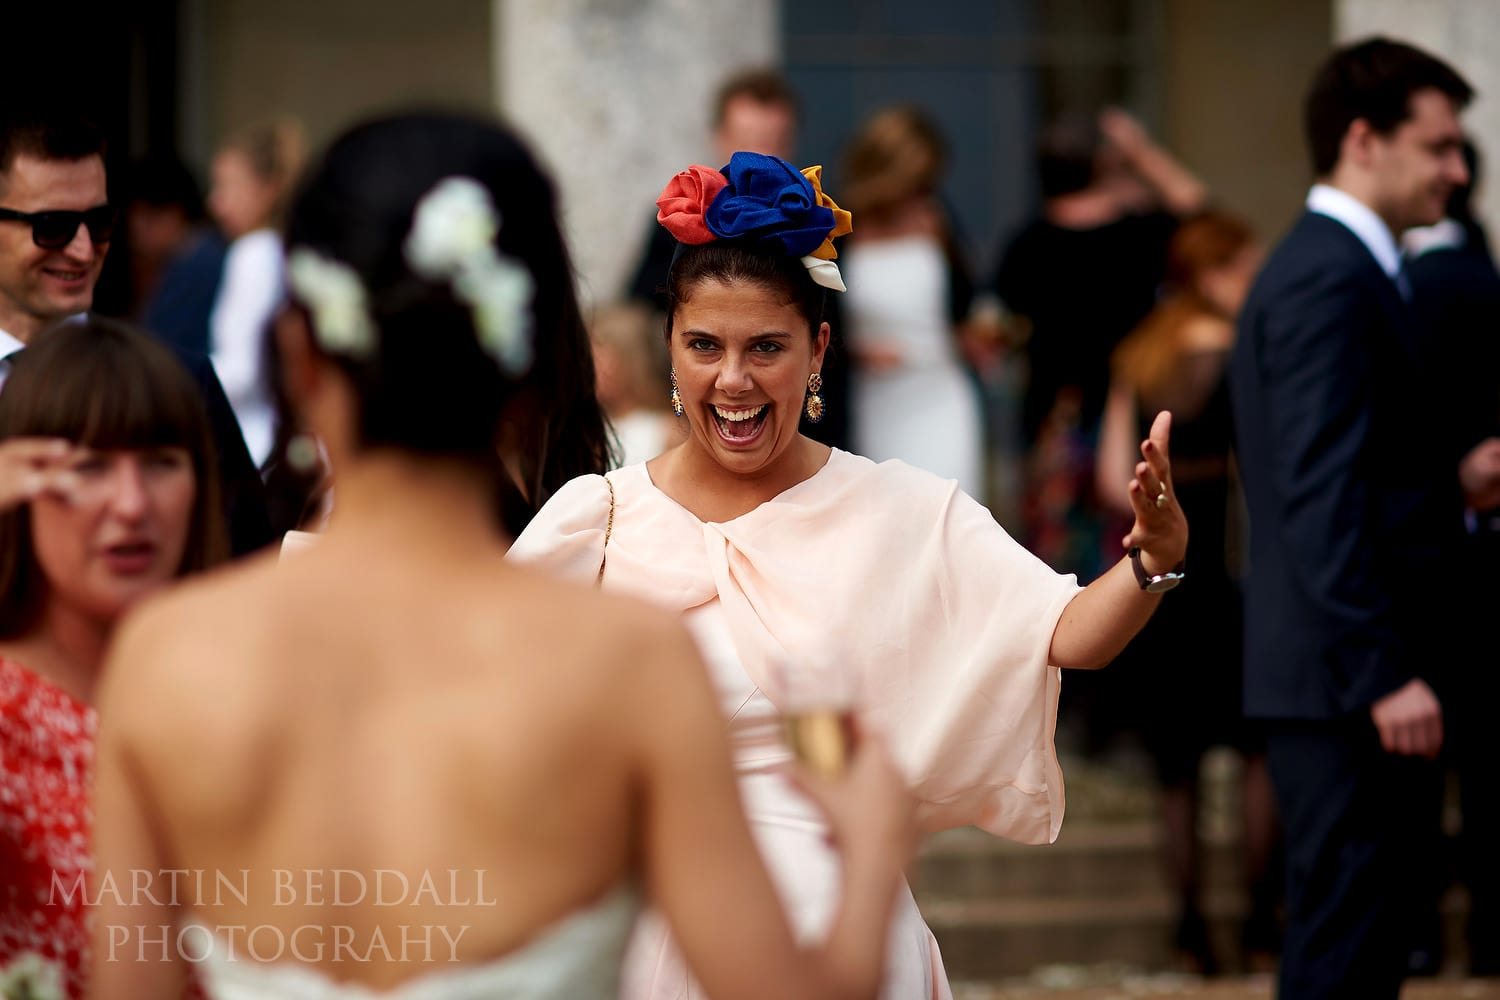 Guest rushes to greet the bride